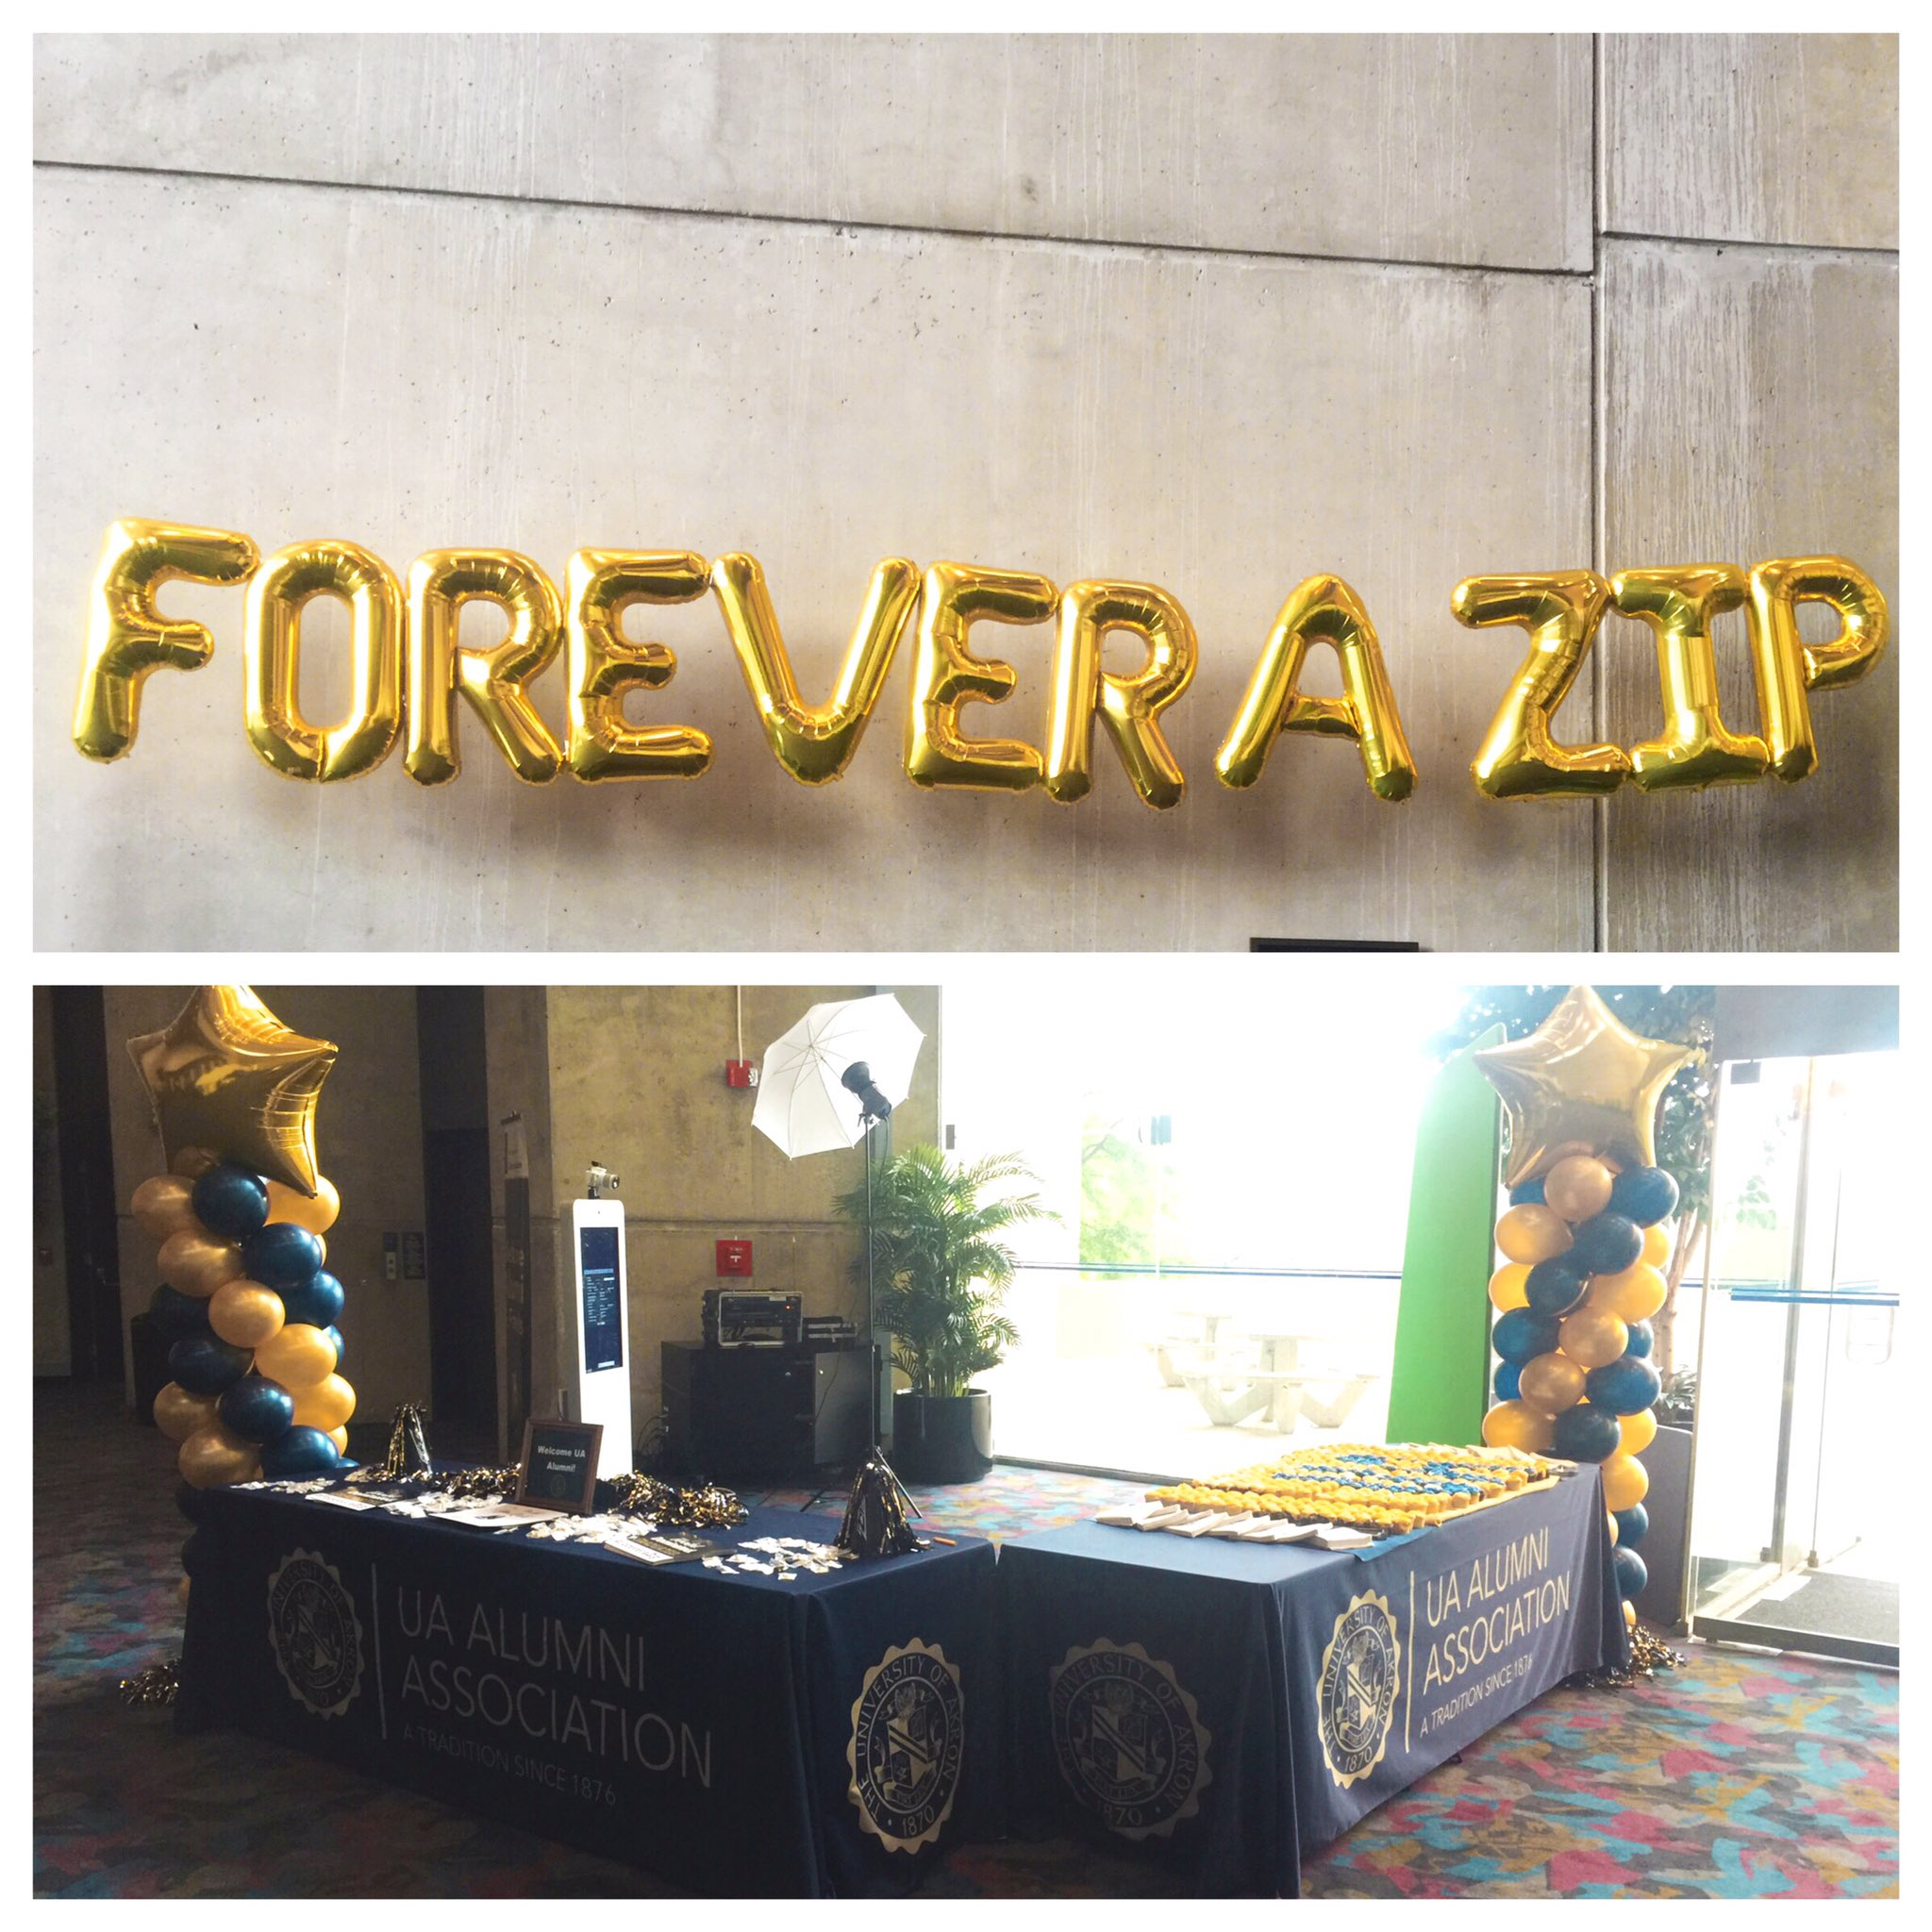 We are all set up! If you're at graduation, be sure to stop by! Congrats class of 2017! #ForeveraZip https://t.co/RdrxbA5WoR